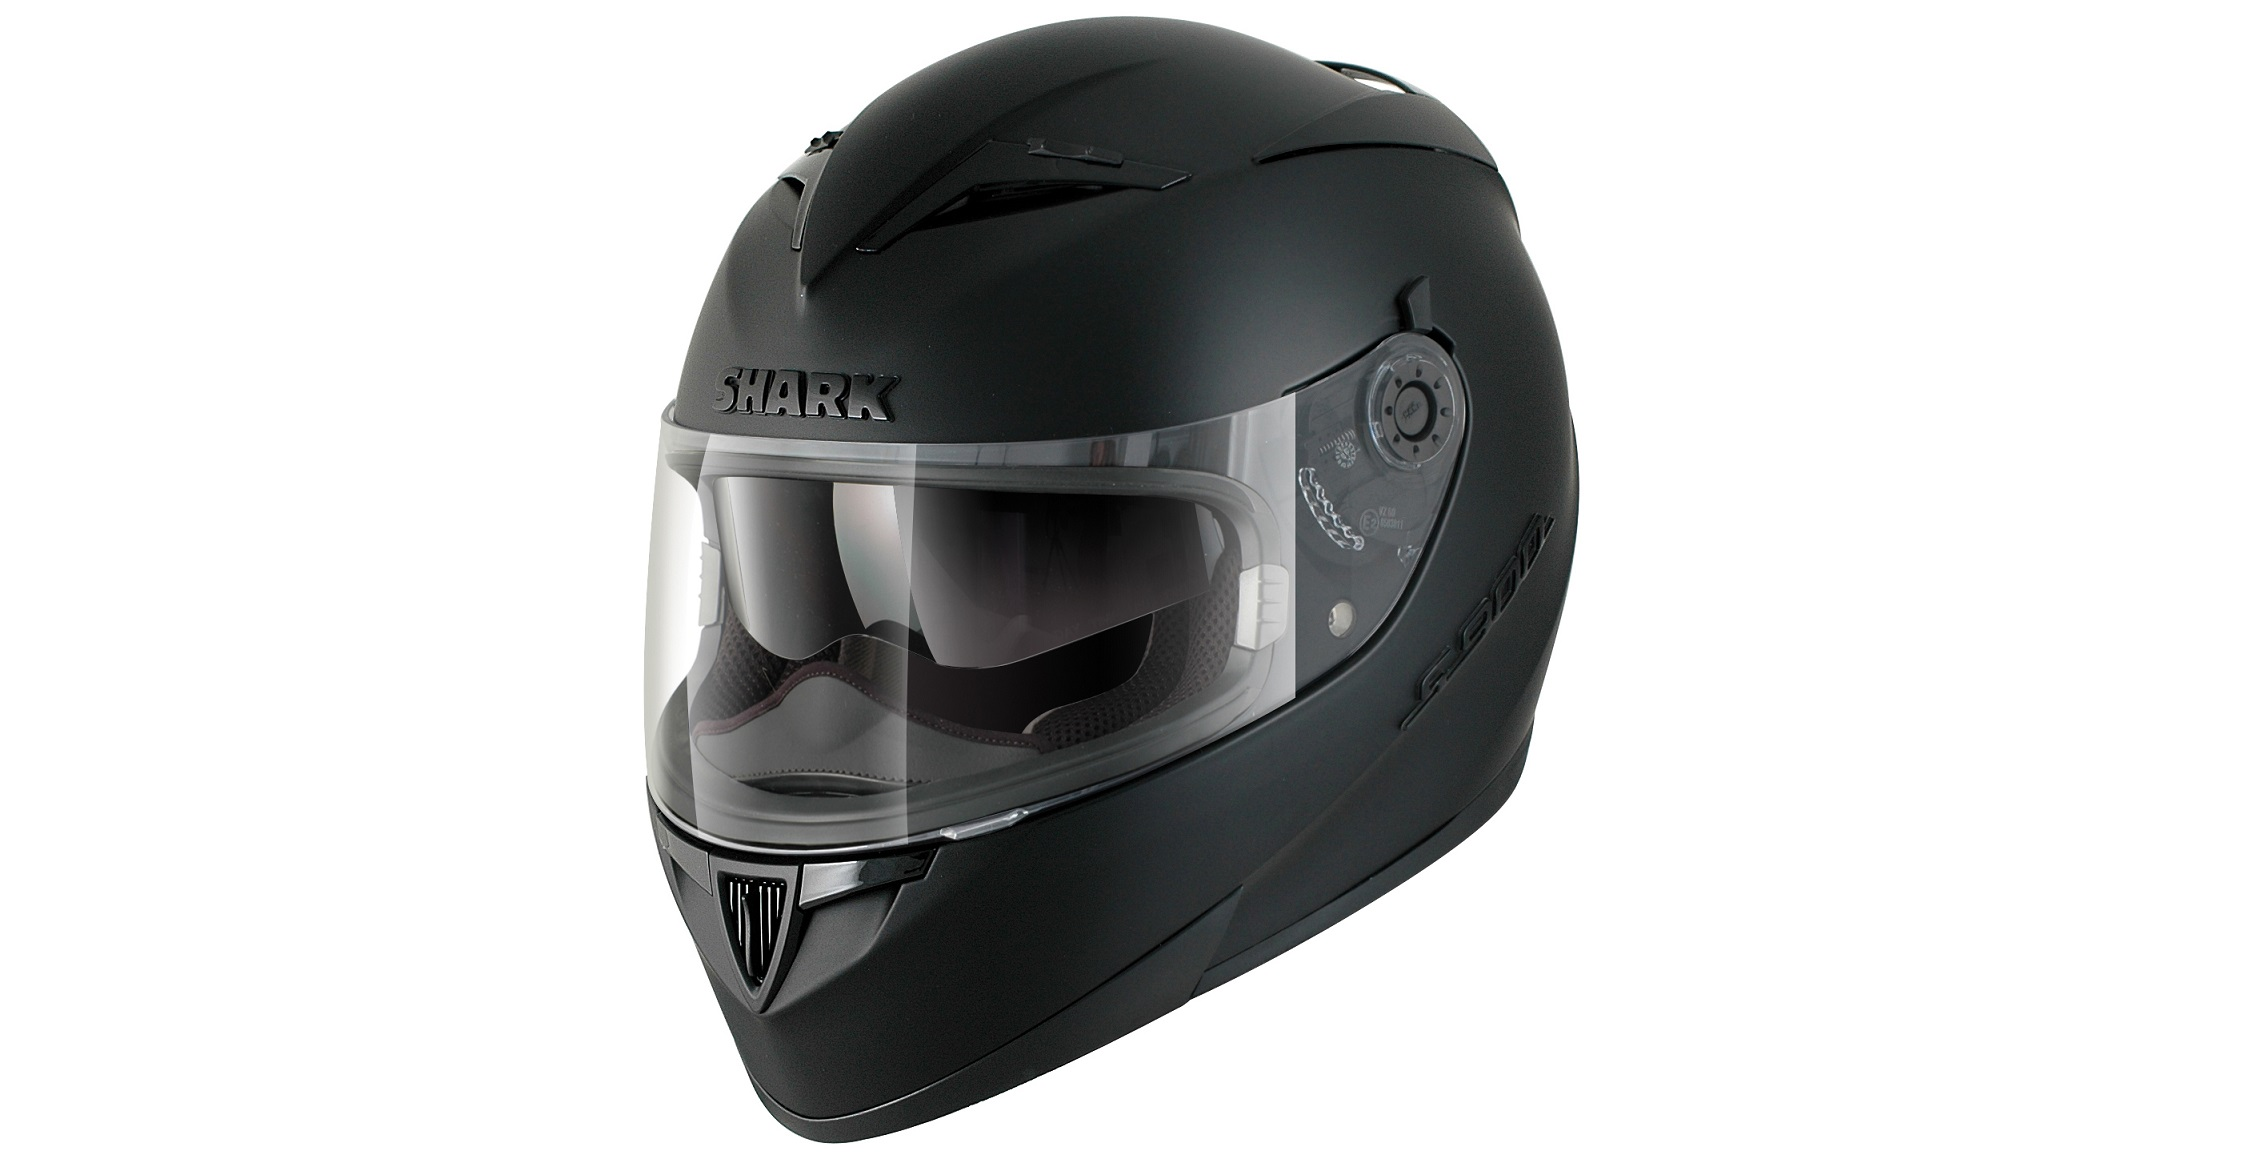 test du casque shark s900 mon avis la poign e dans l 39 angle. Black Bedroom Furniture Sets. Home Design Ideas